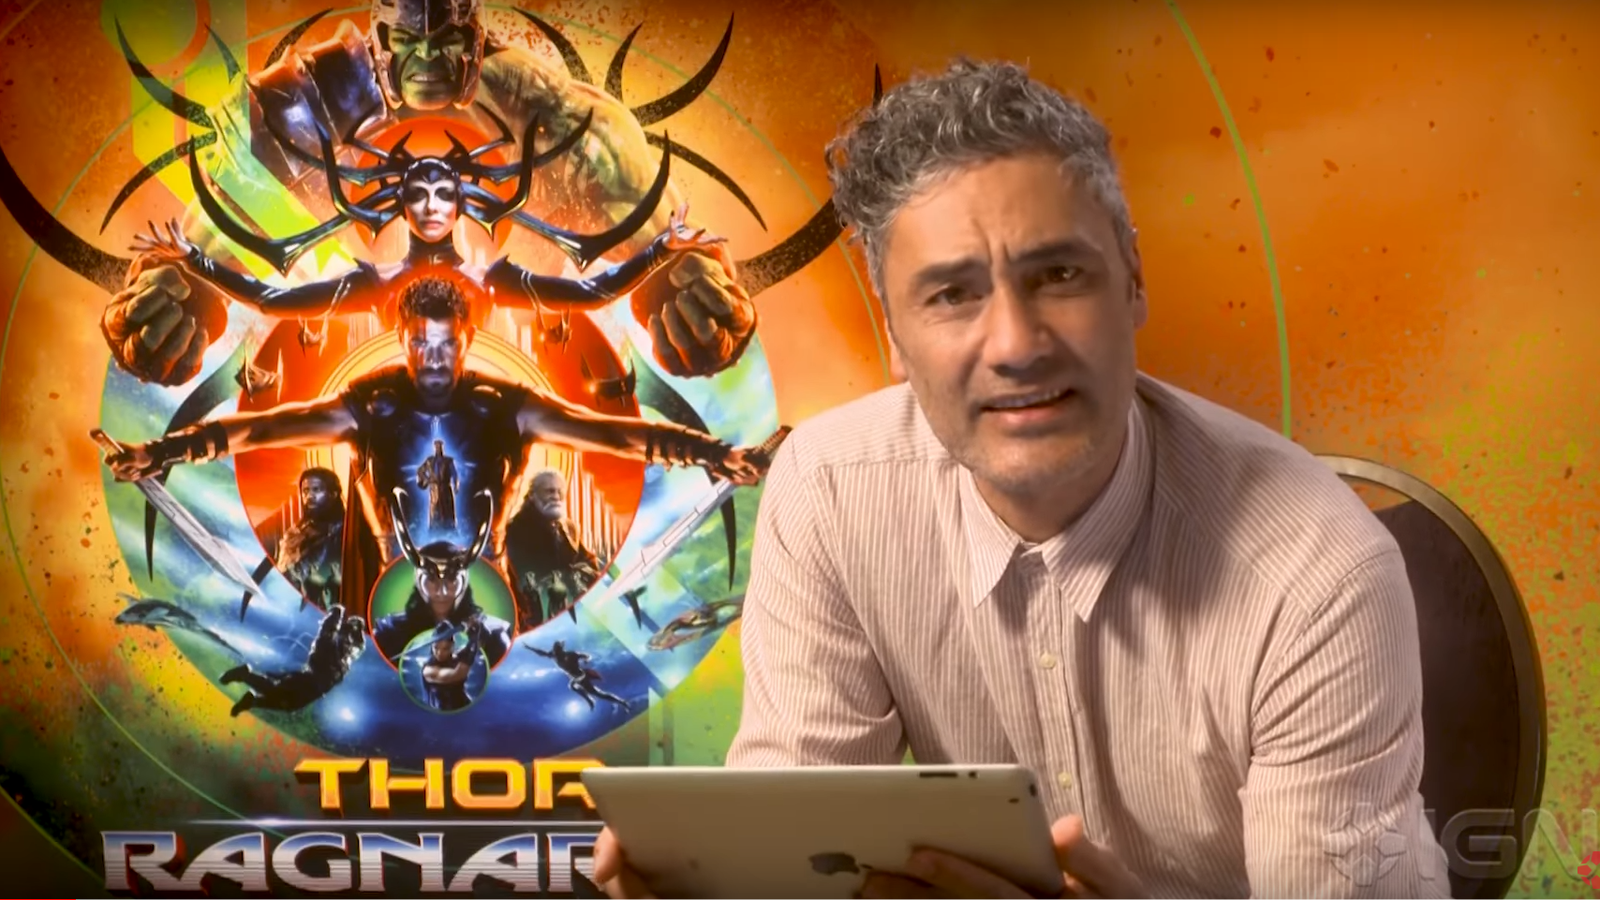 Thor: Ragnarok Director Taika Waititi Responding to Internet Commenters is a Pure Joy